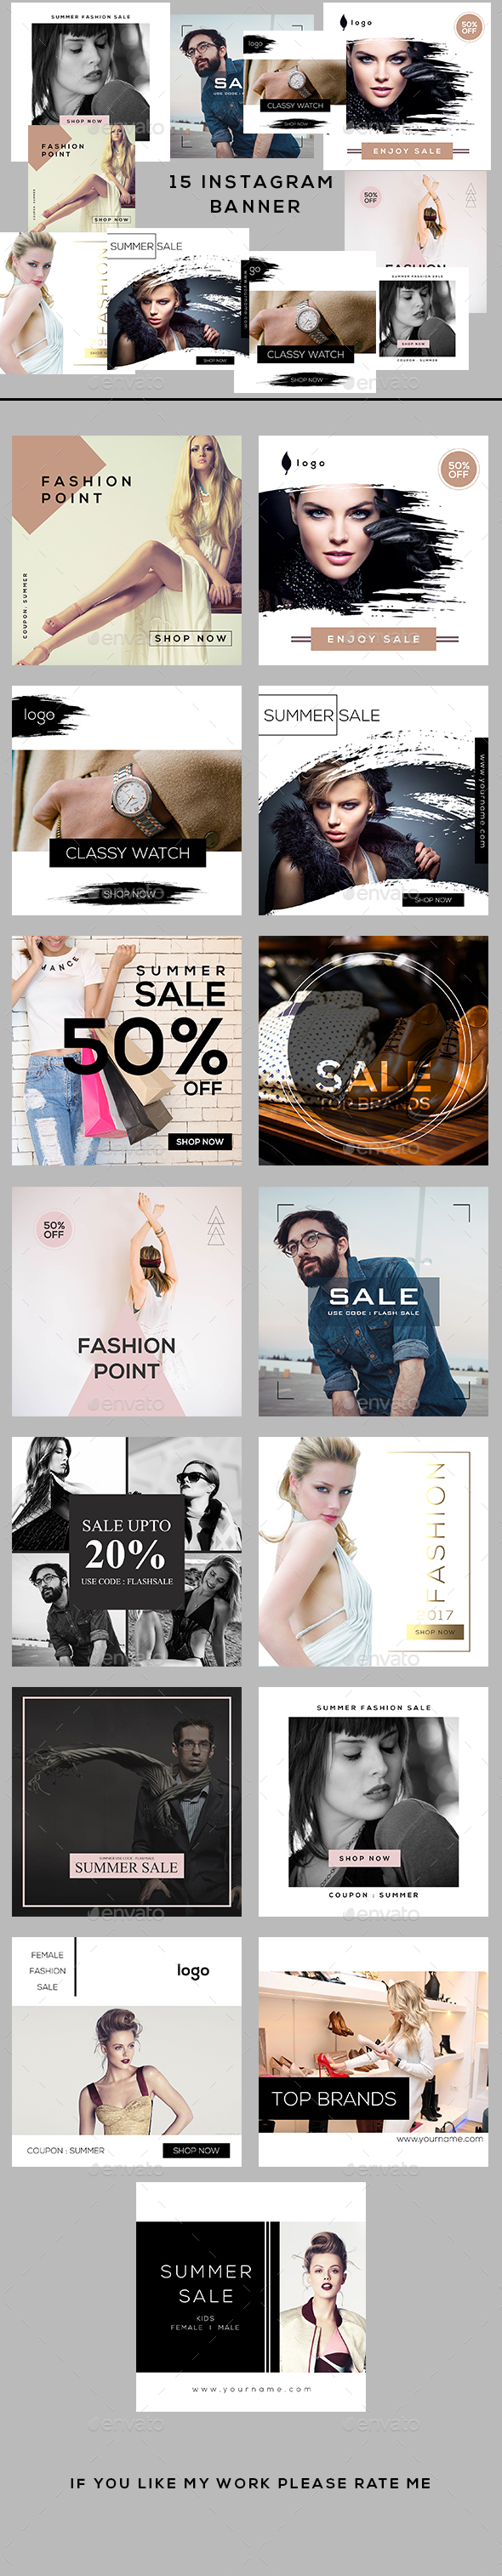 Fashion Instagram Banners - Banners & Ads Web Elements